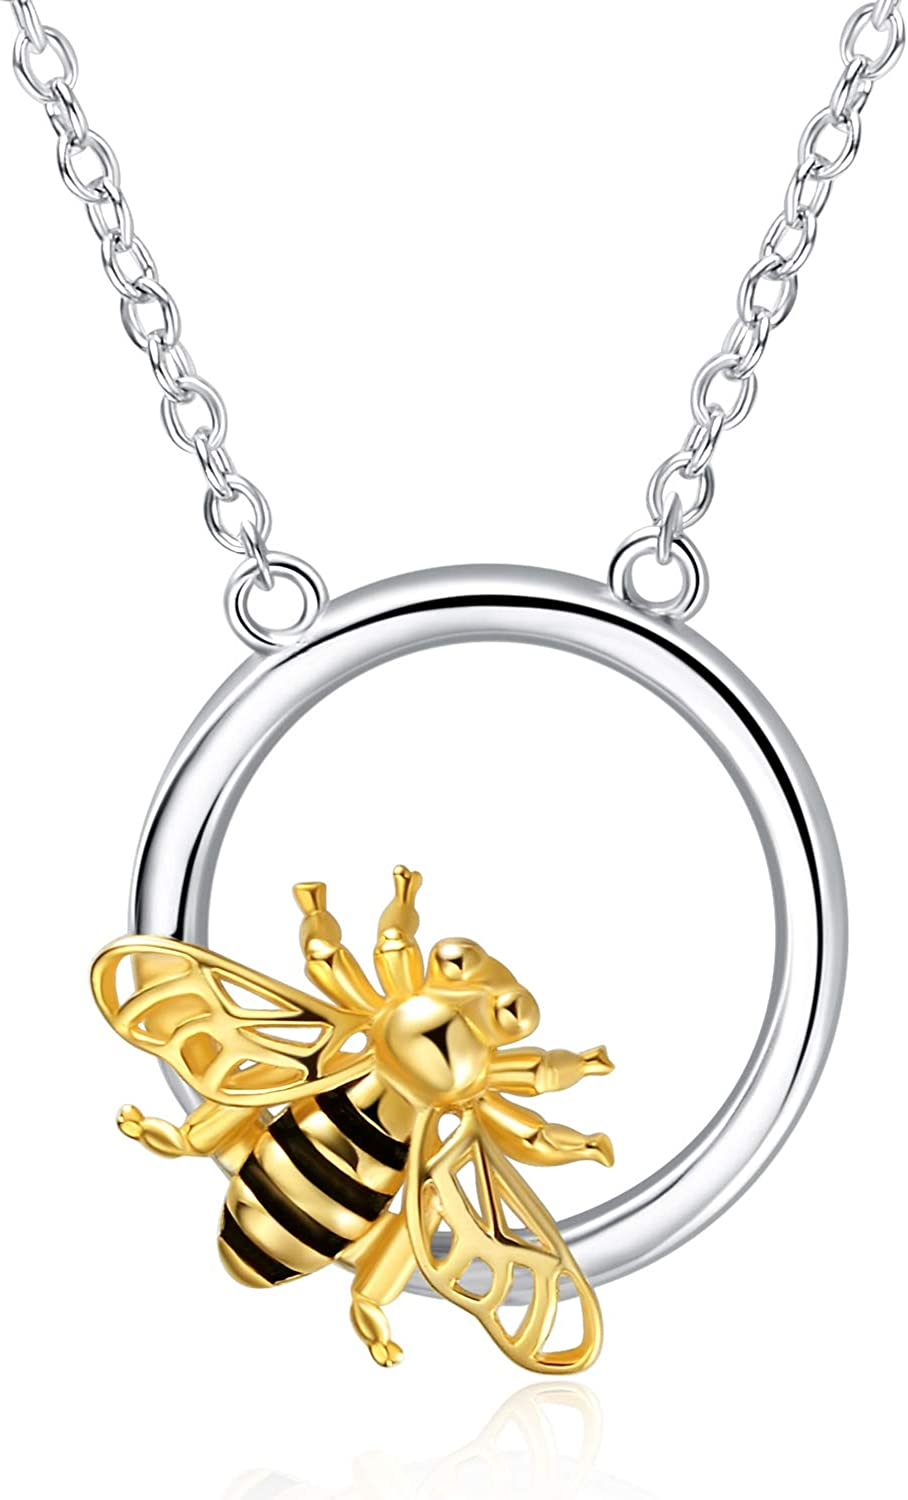 YFN Bee Necklace 925 Sterling Silver Bee Jewelry Honeybee Bumblebee Pendant Necklace for Women Girls Gifts